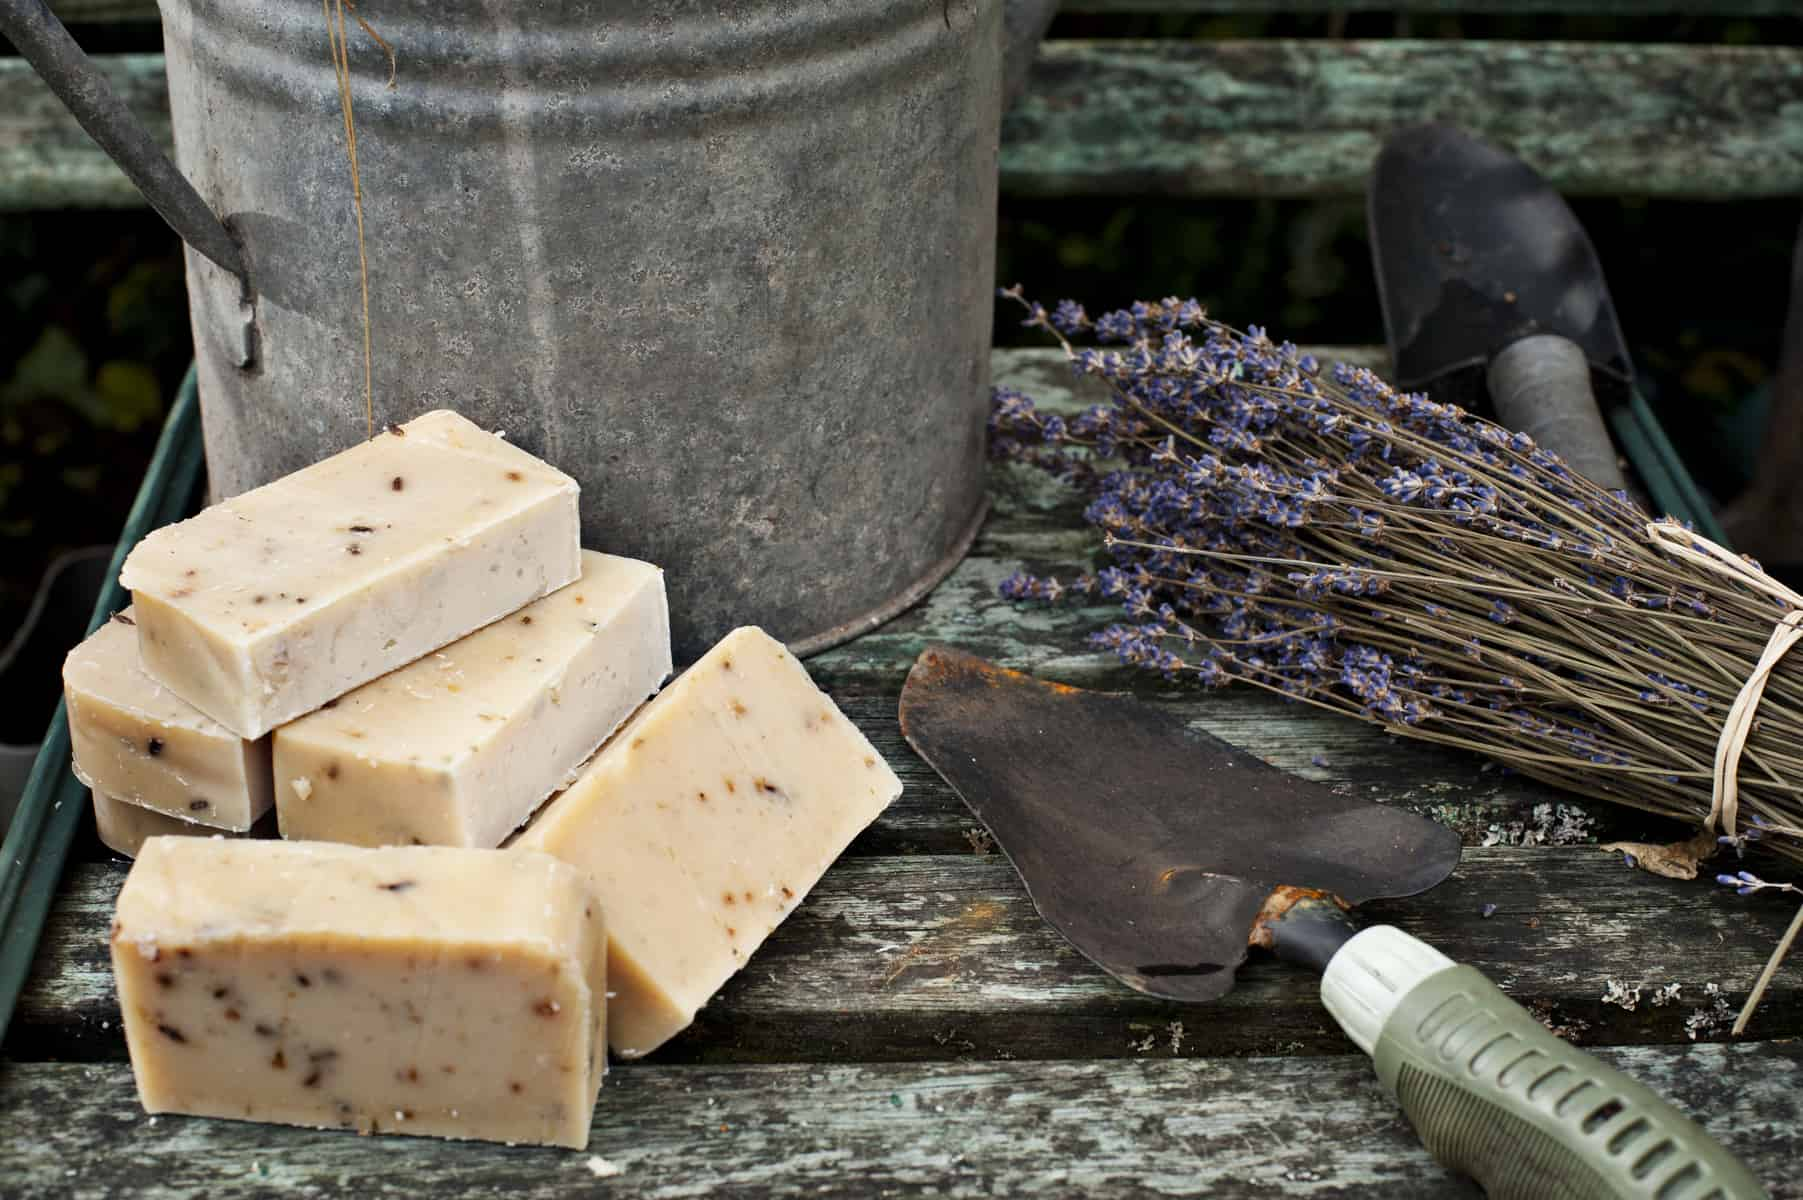 Gardeners Goats Milk Soap Handmade by Cyril's Soap Shed